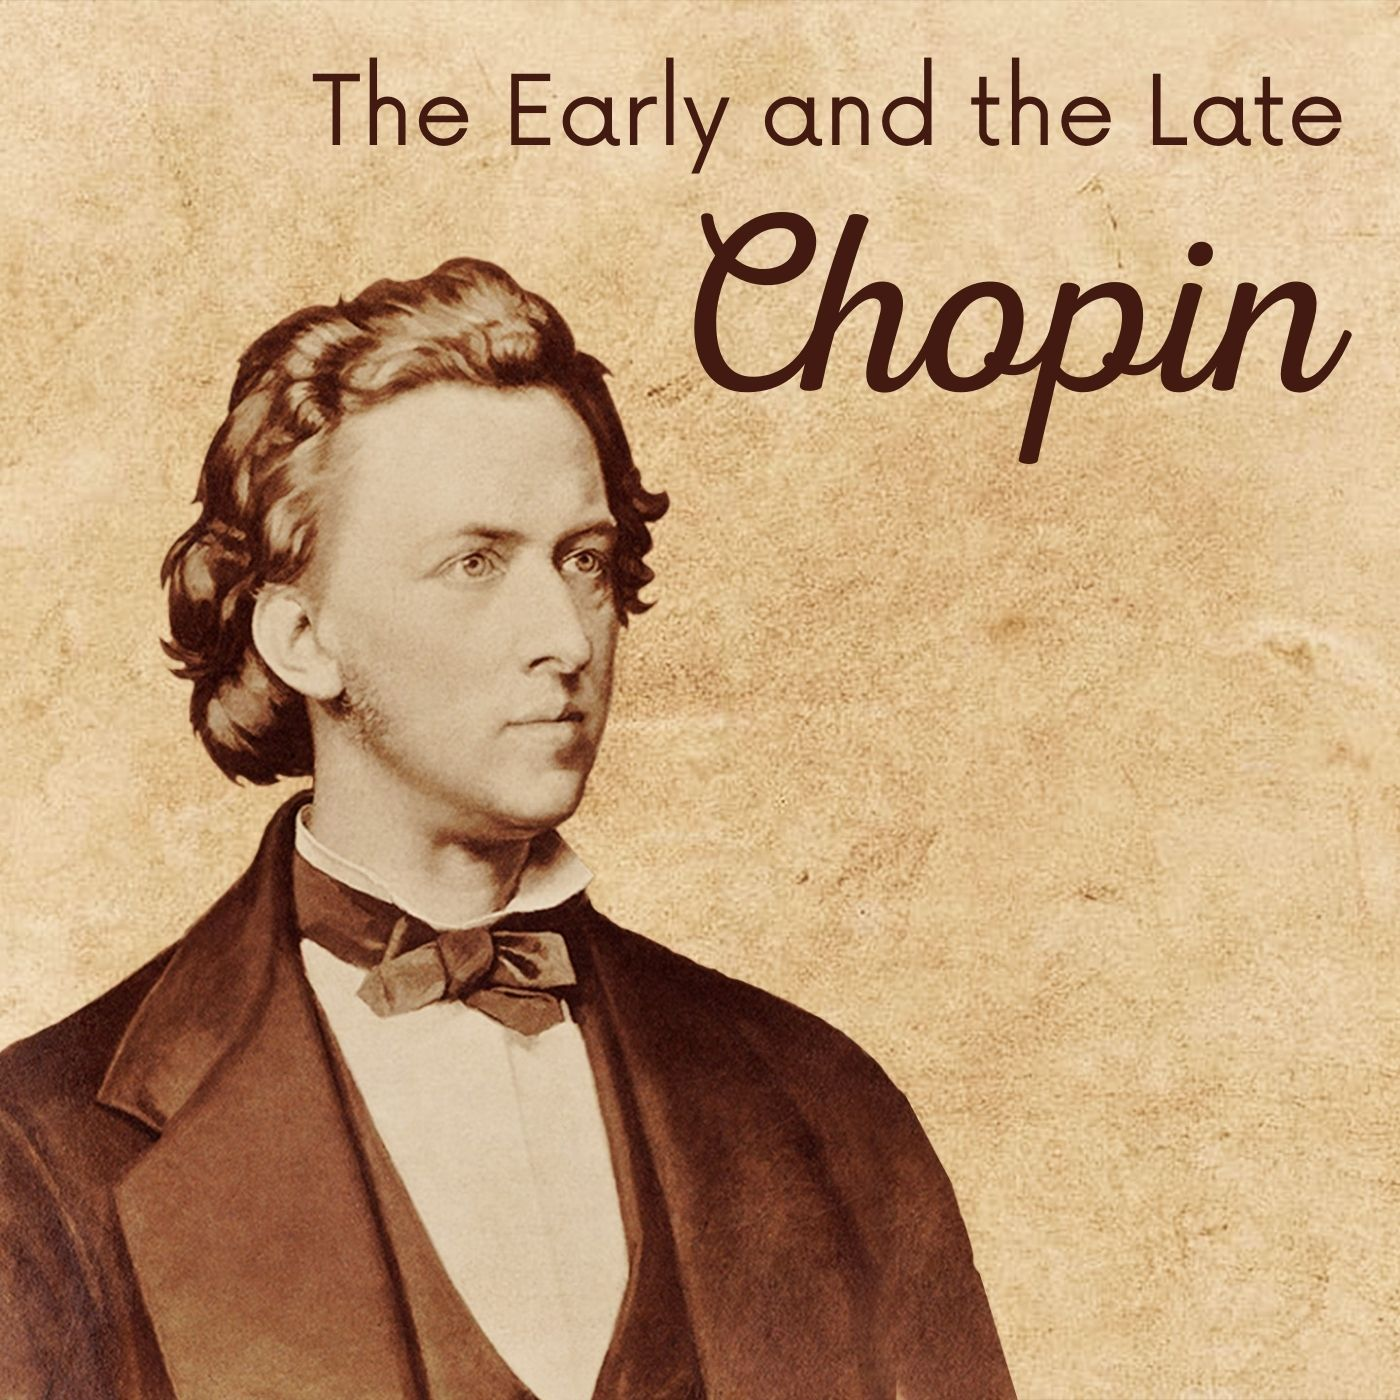 The Early and the Late Chopin